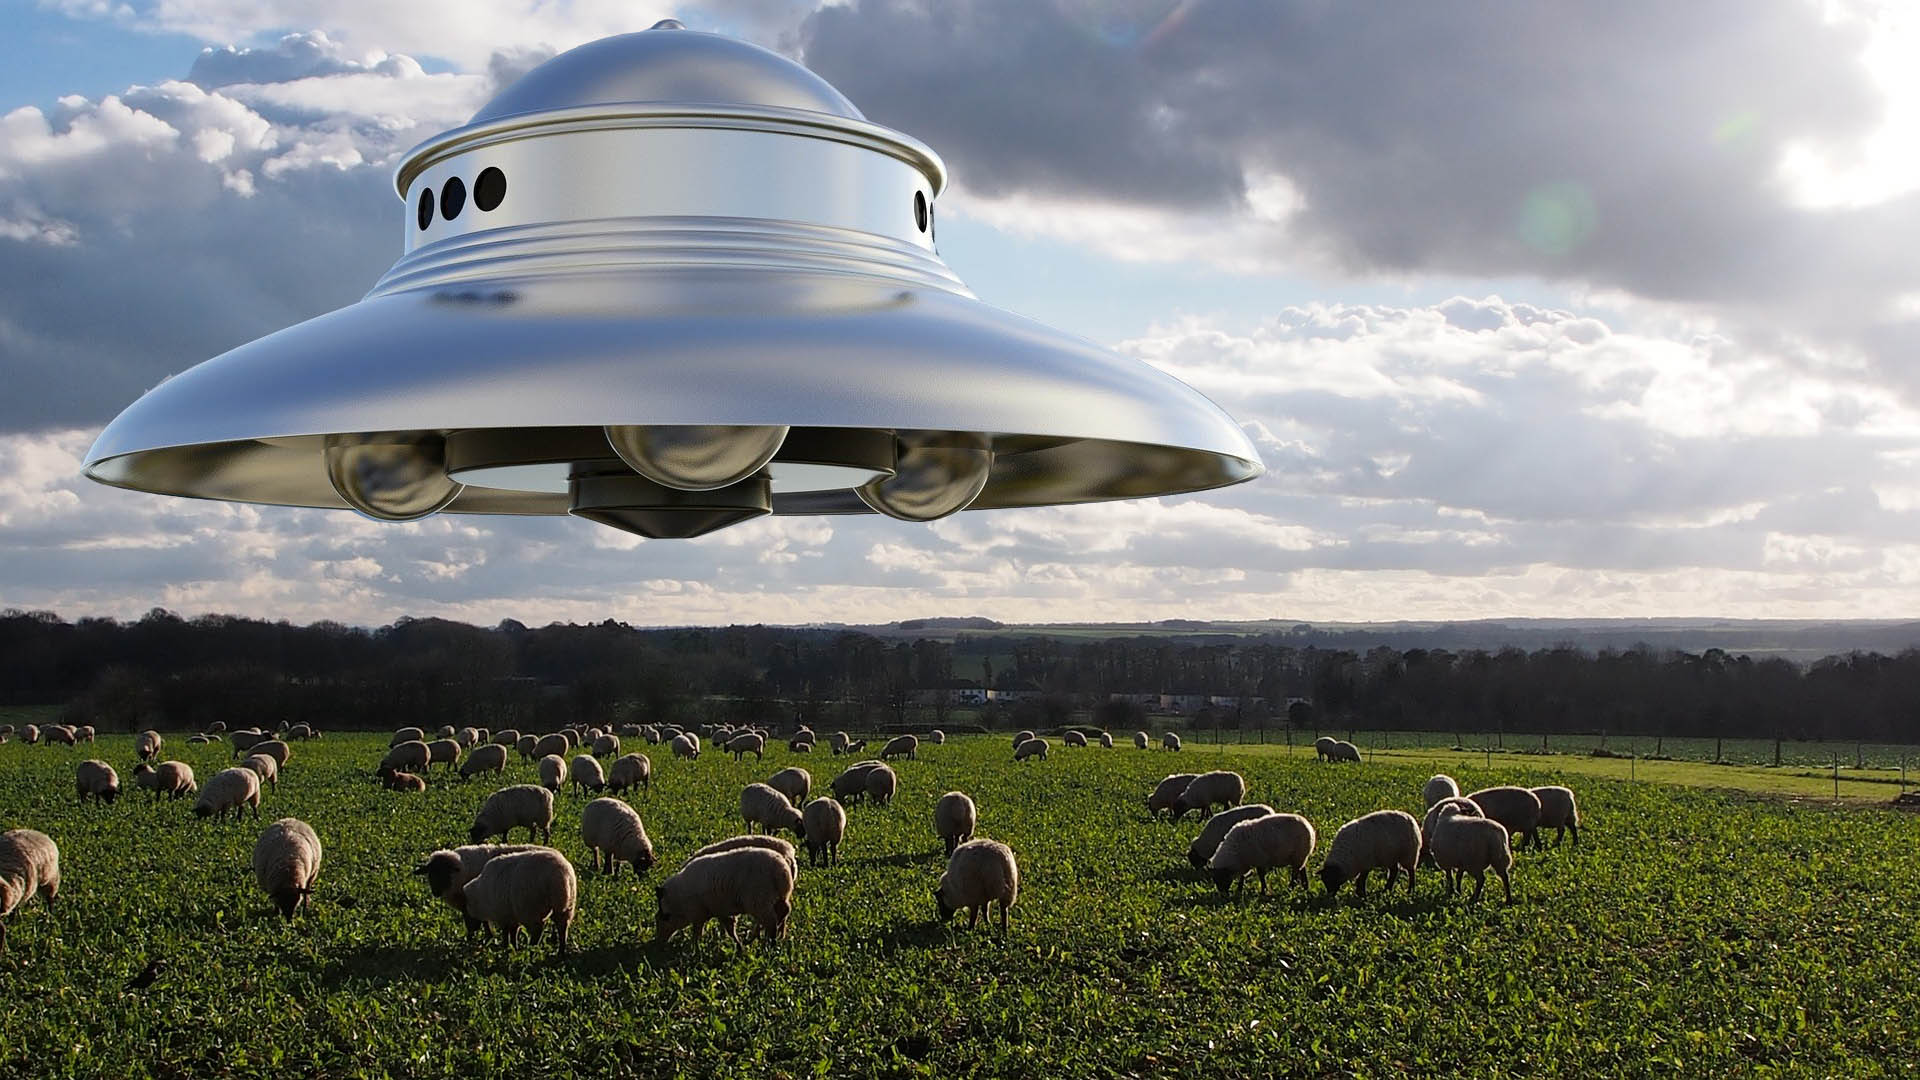 TT Strange Times - A Staycation Summer - Bust out your inner Scully or Mulder - you have the opportunity to go UFO hunting in Wiltshire with a Treasure Trail!